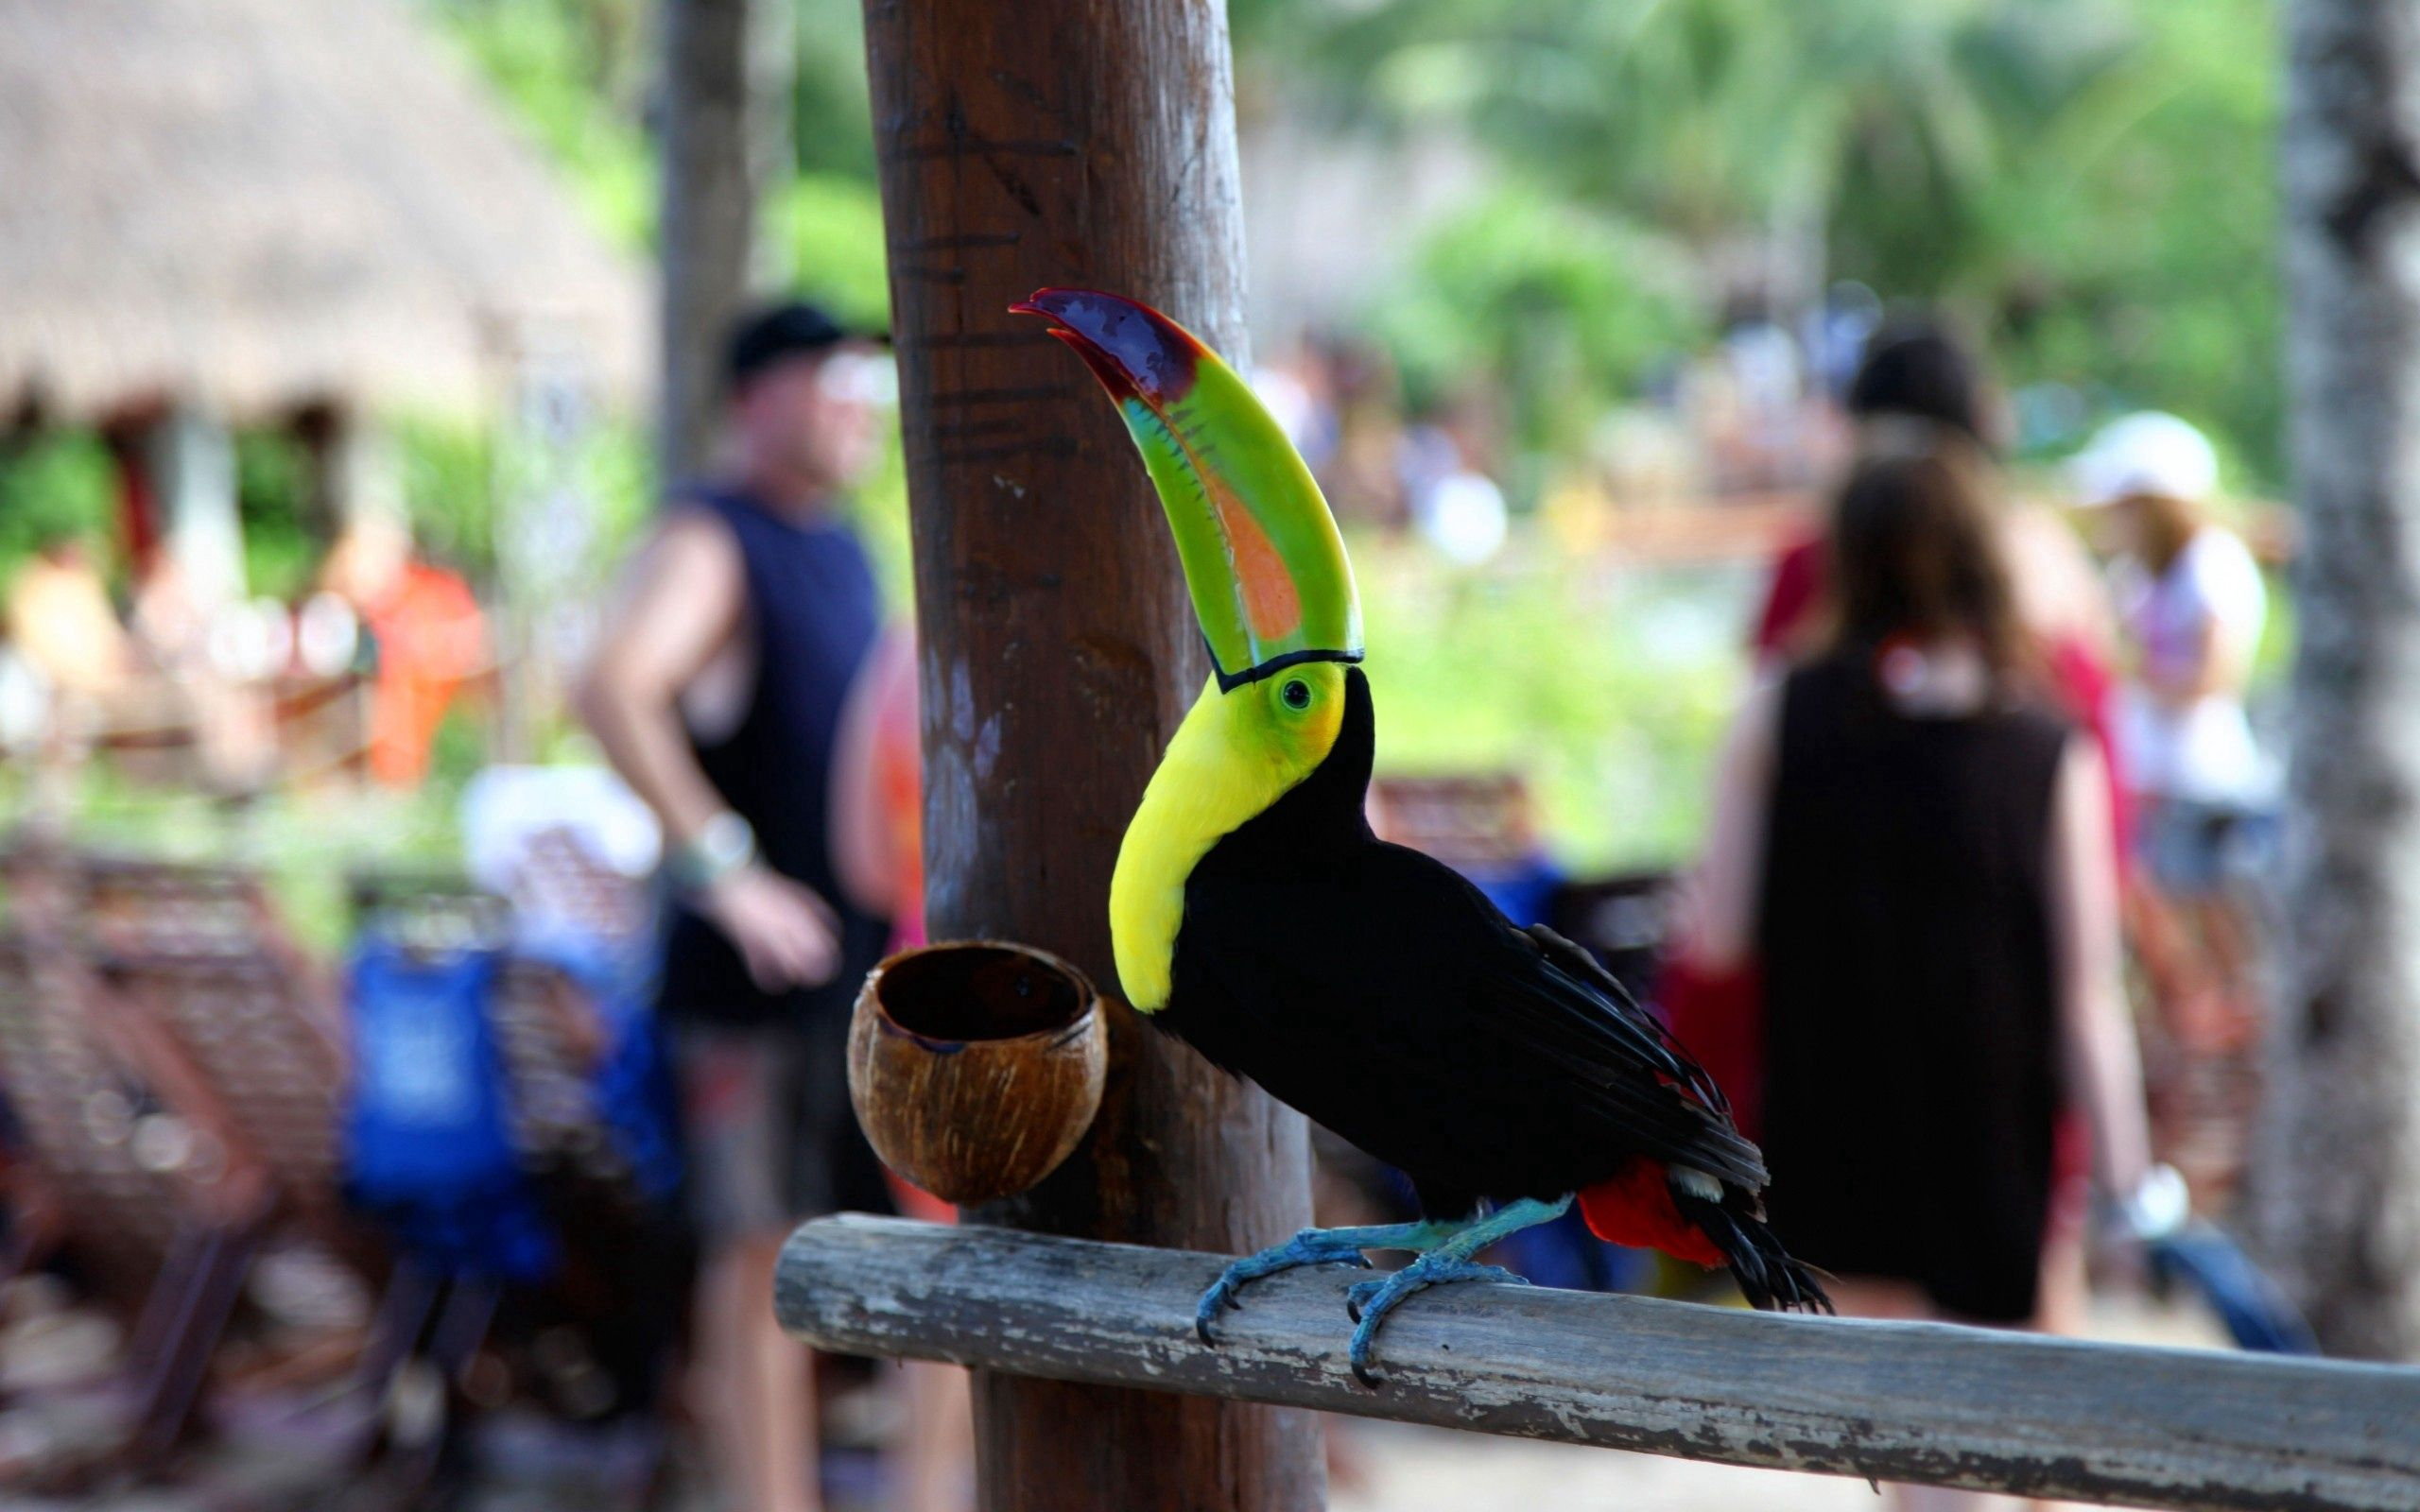 54572 download wallpaper Animals, Toucan, Bird, Color, Beak, People screensavers and pictures for free